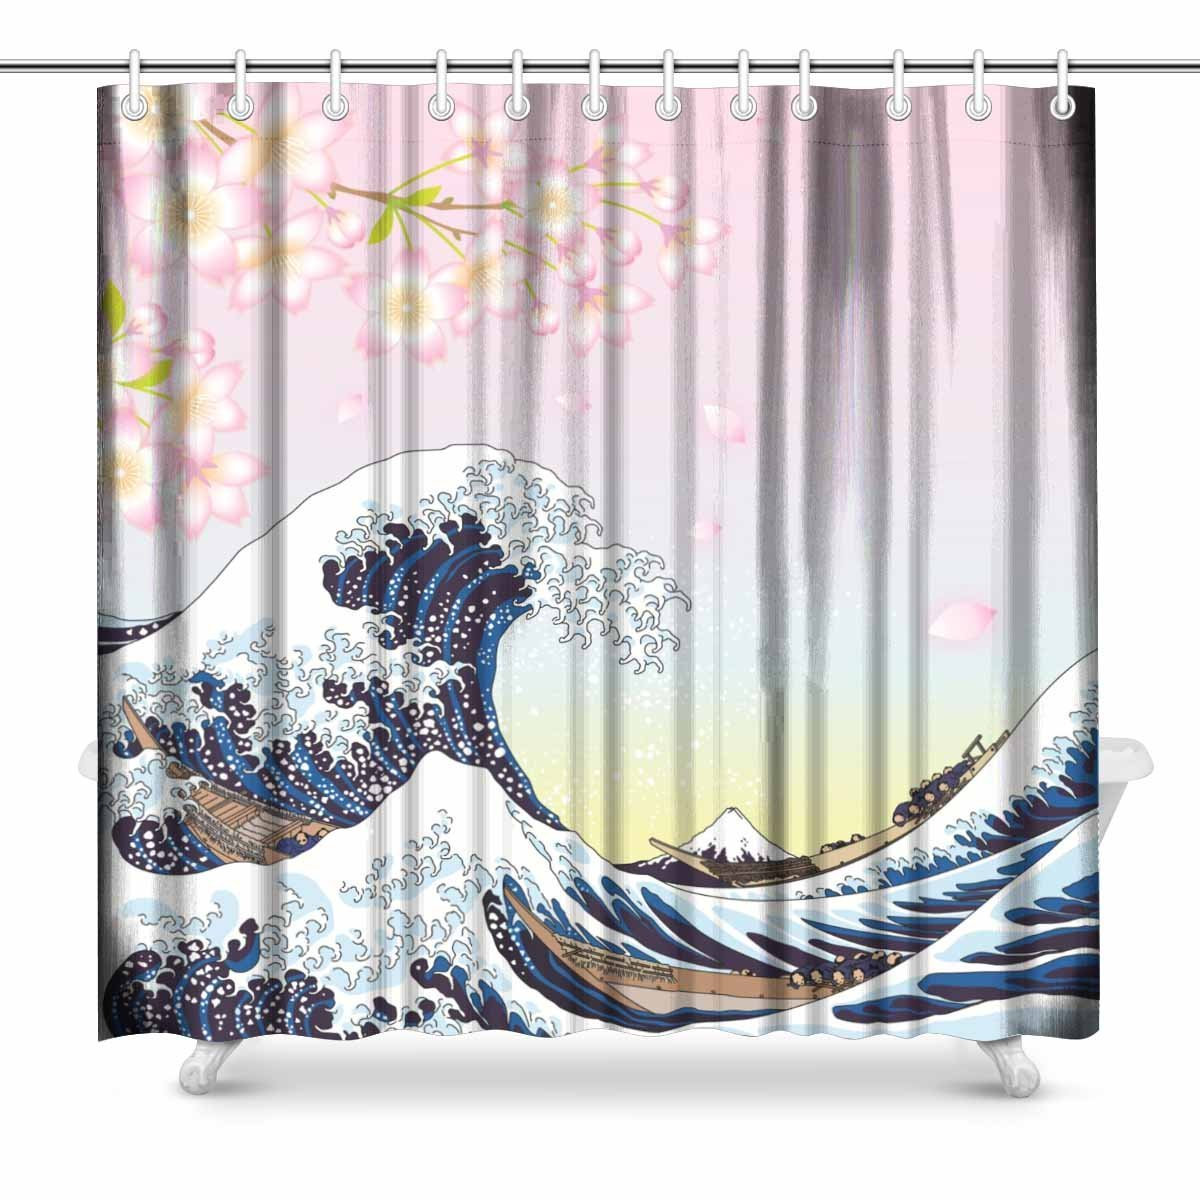 Us 31 49 Aplysia Big Wave And Cherry Blossoms Fabric Bathroom Shower Curtain Set 72 X 72 Inches In Shower Curtains From Home Garden On